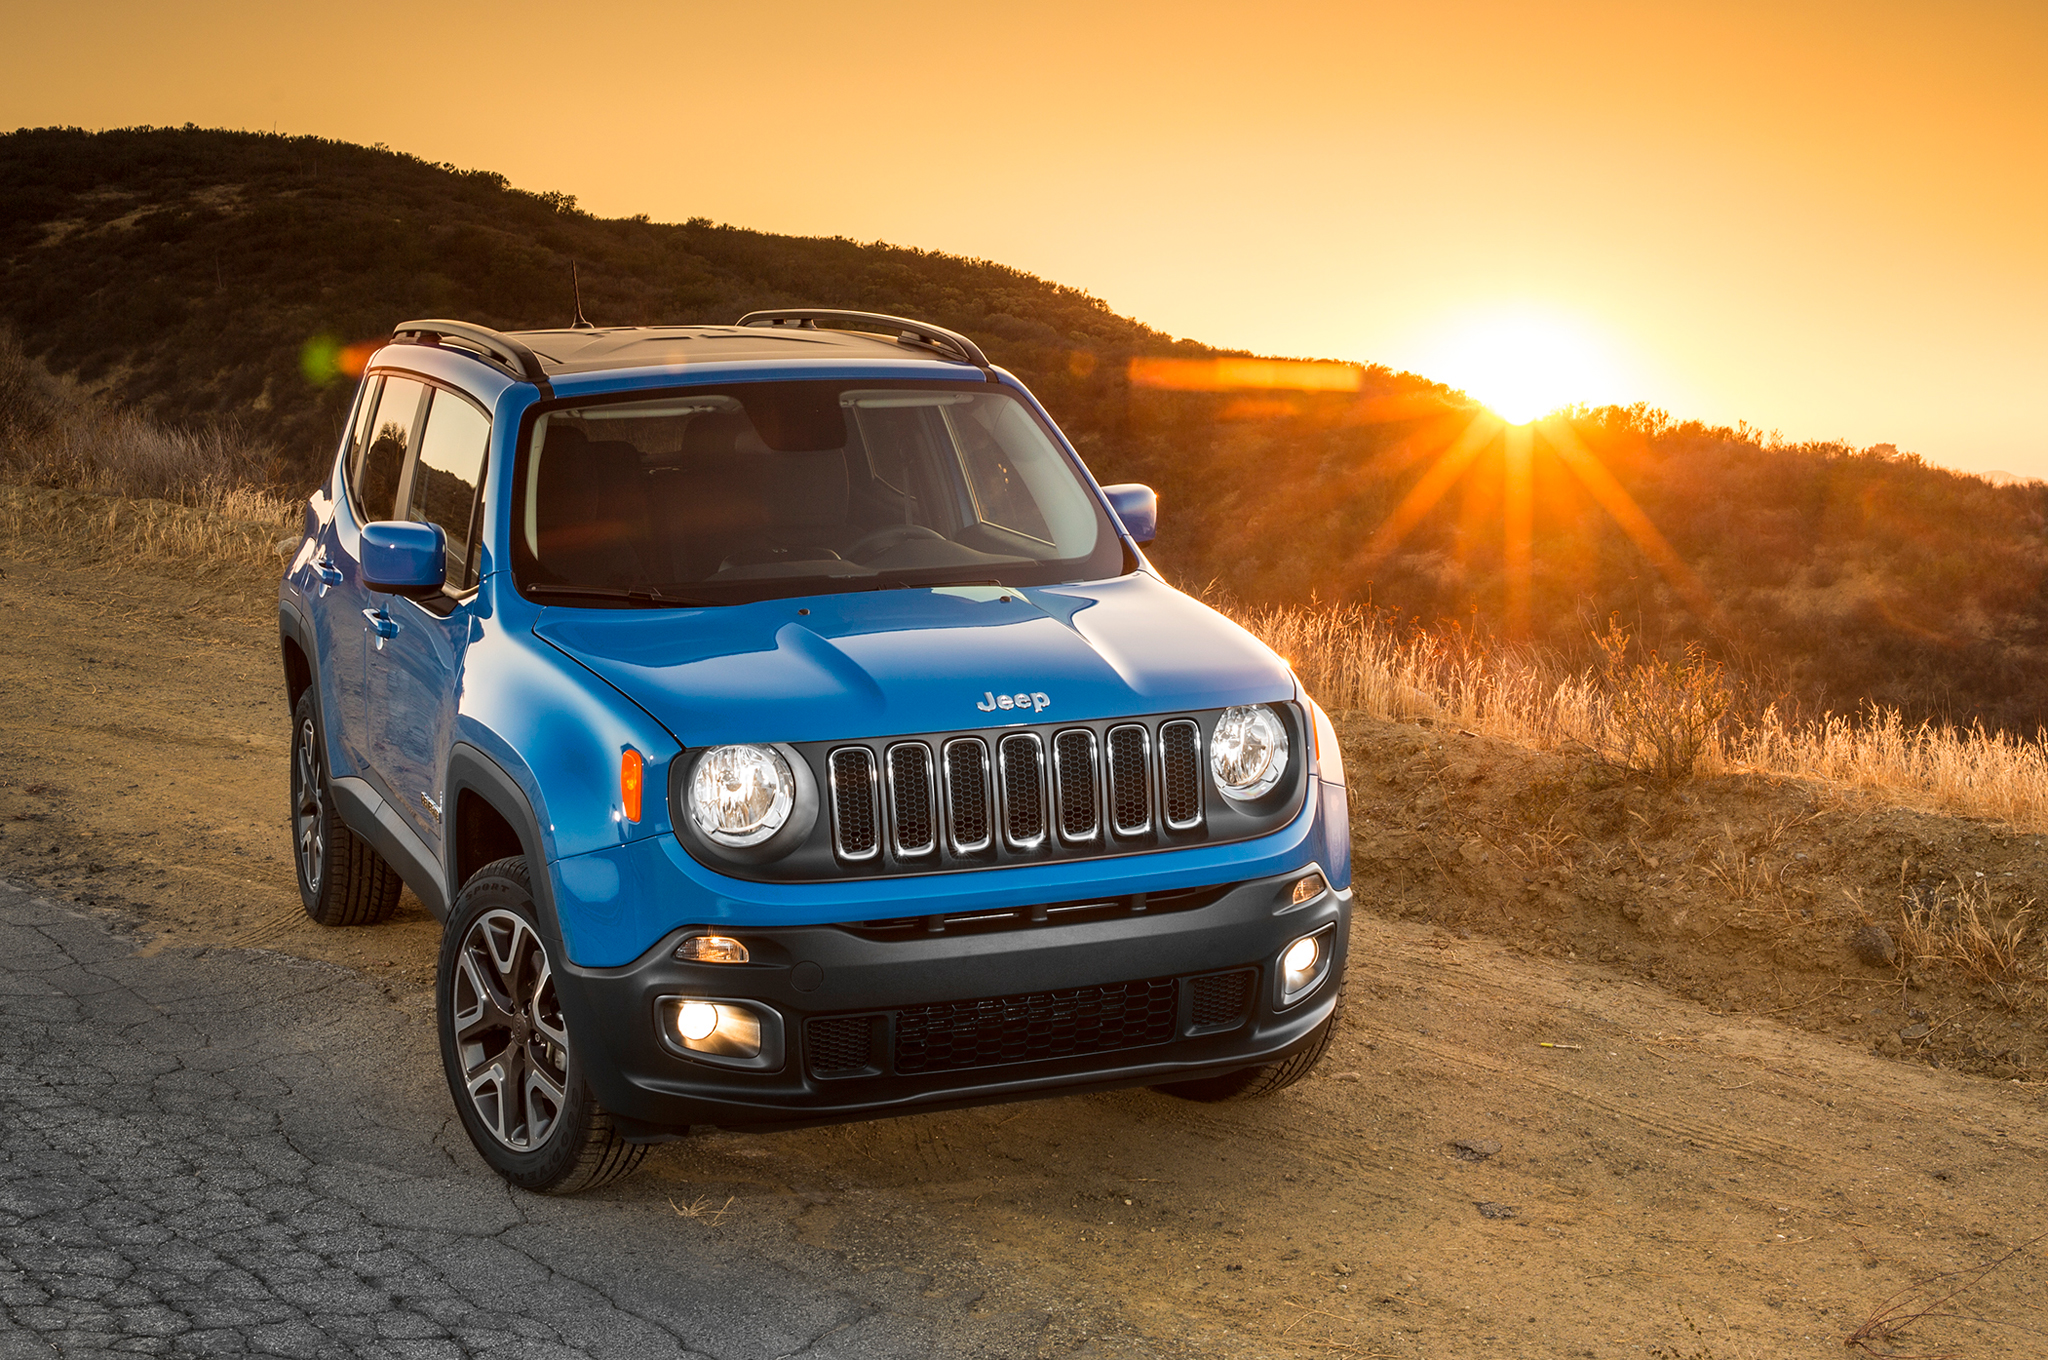 2015 jeep renegade overview 735 cars performance reviews and test drive. Black Bedroom Furniture Sets. Home Design Ideas